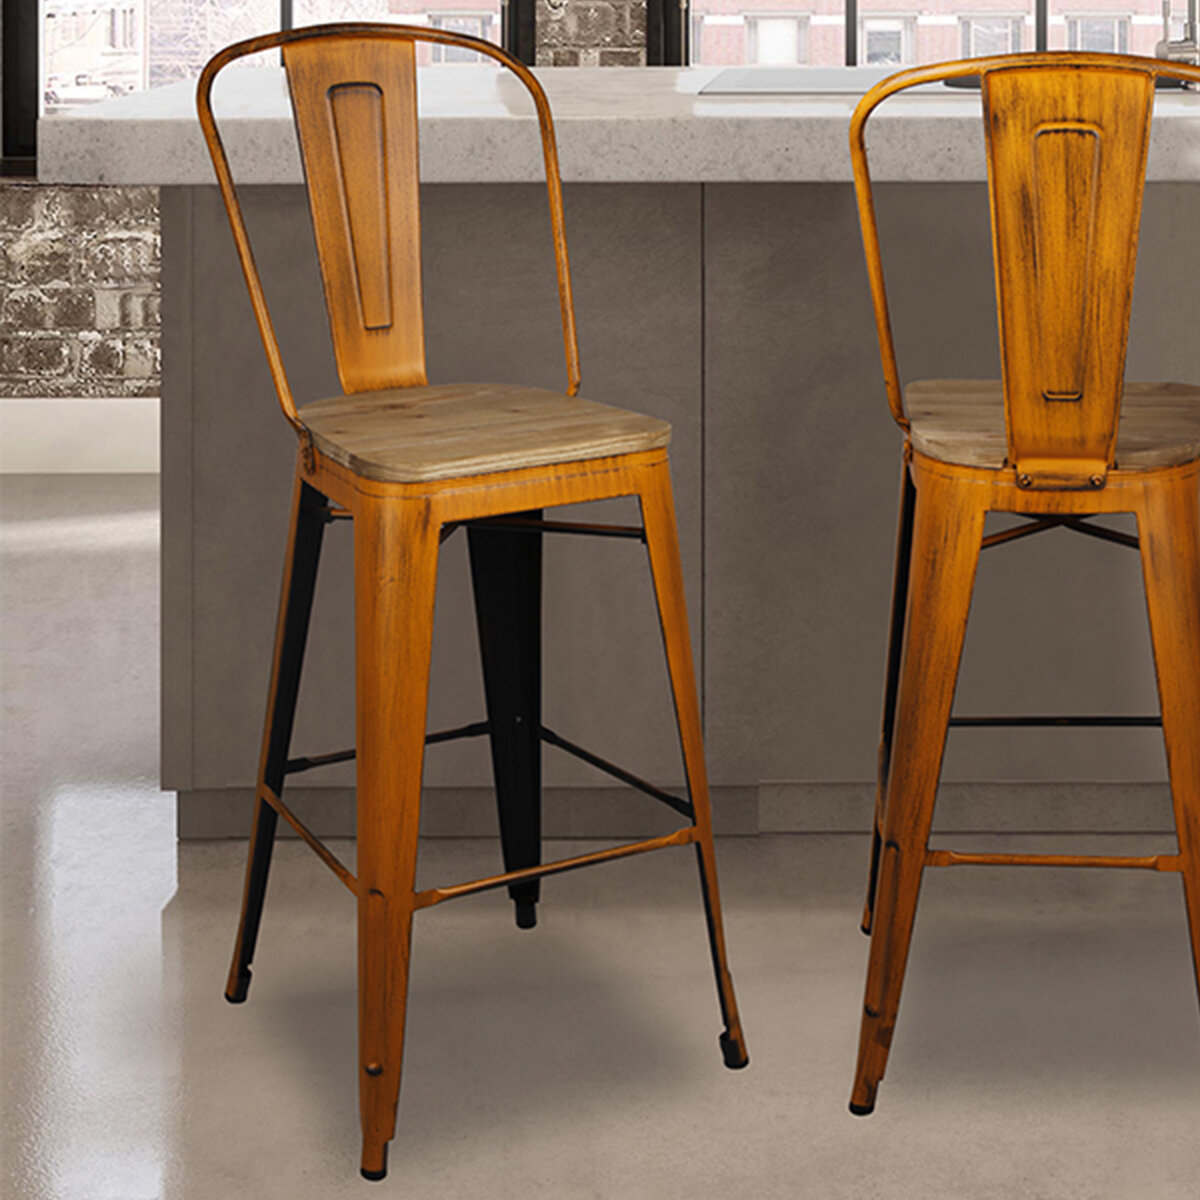 Details About Williston Forge Alabaster 30 Bar Stool Set Of 4